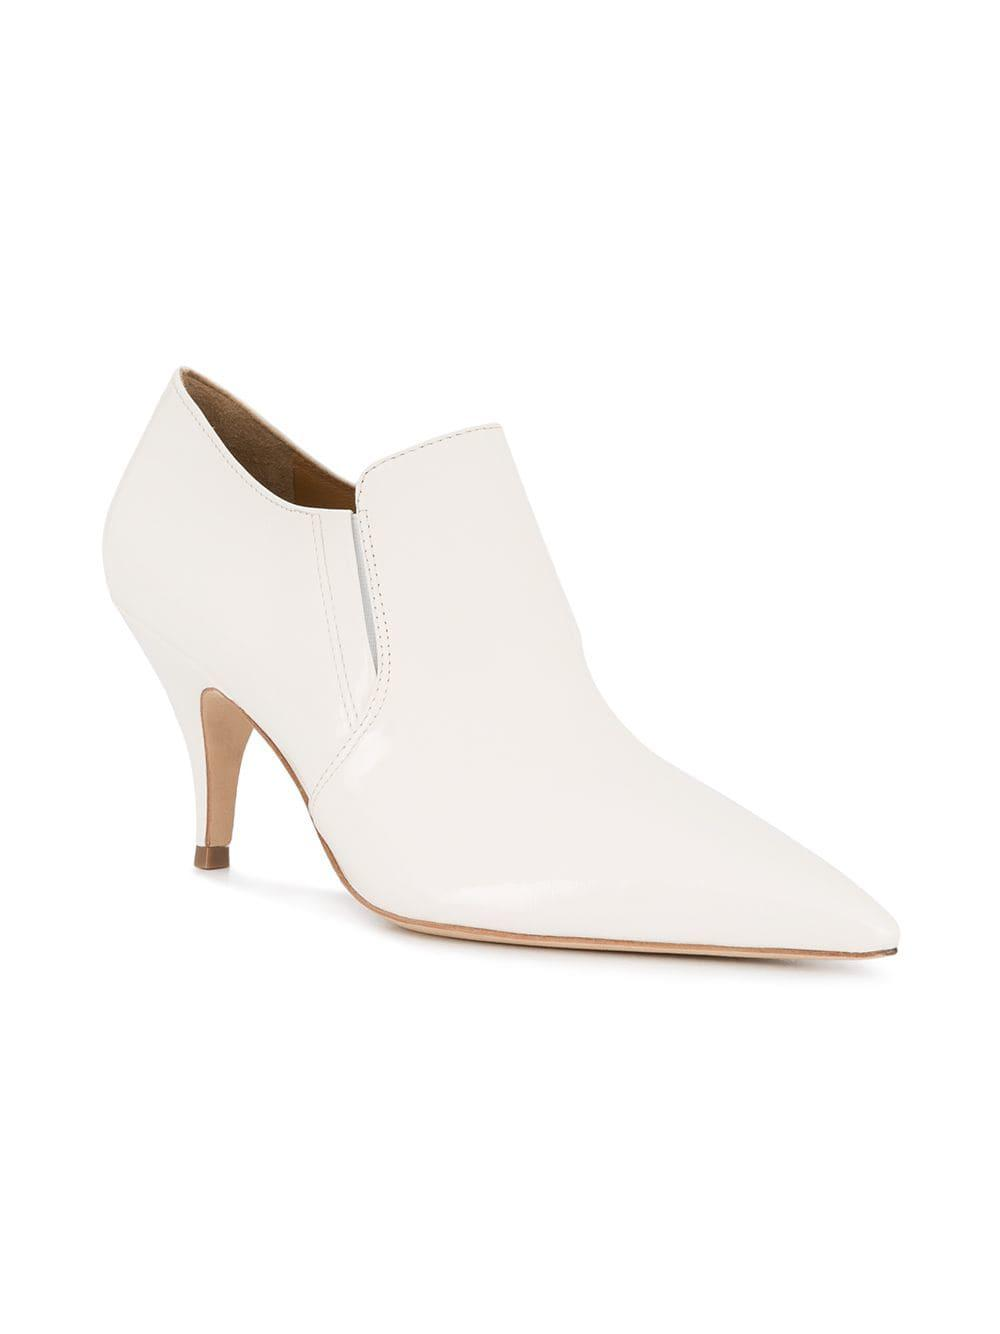 cb3356a5fa56 Lyst - Tory Burch Women s Georgina Pointed Toe Leather High-heel Booties in  White - Save 52%